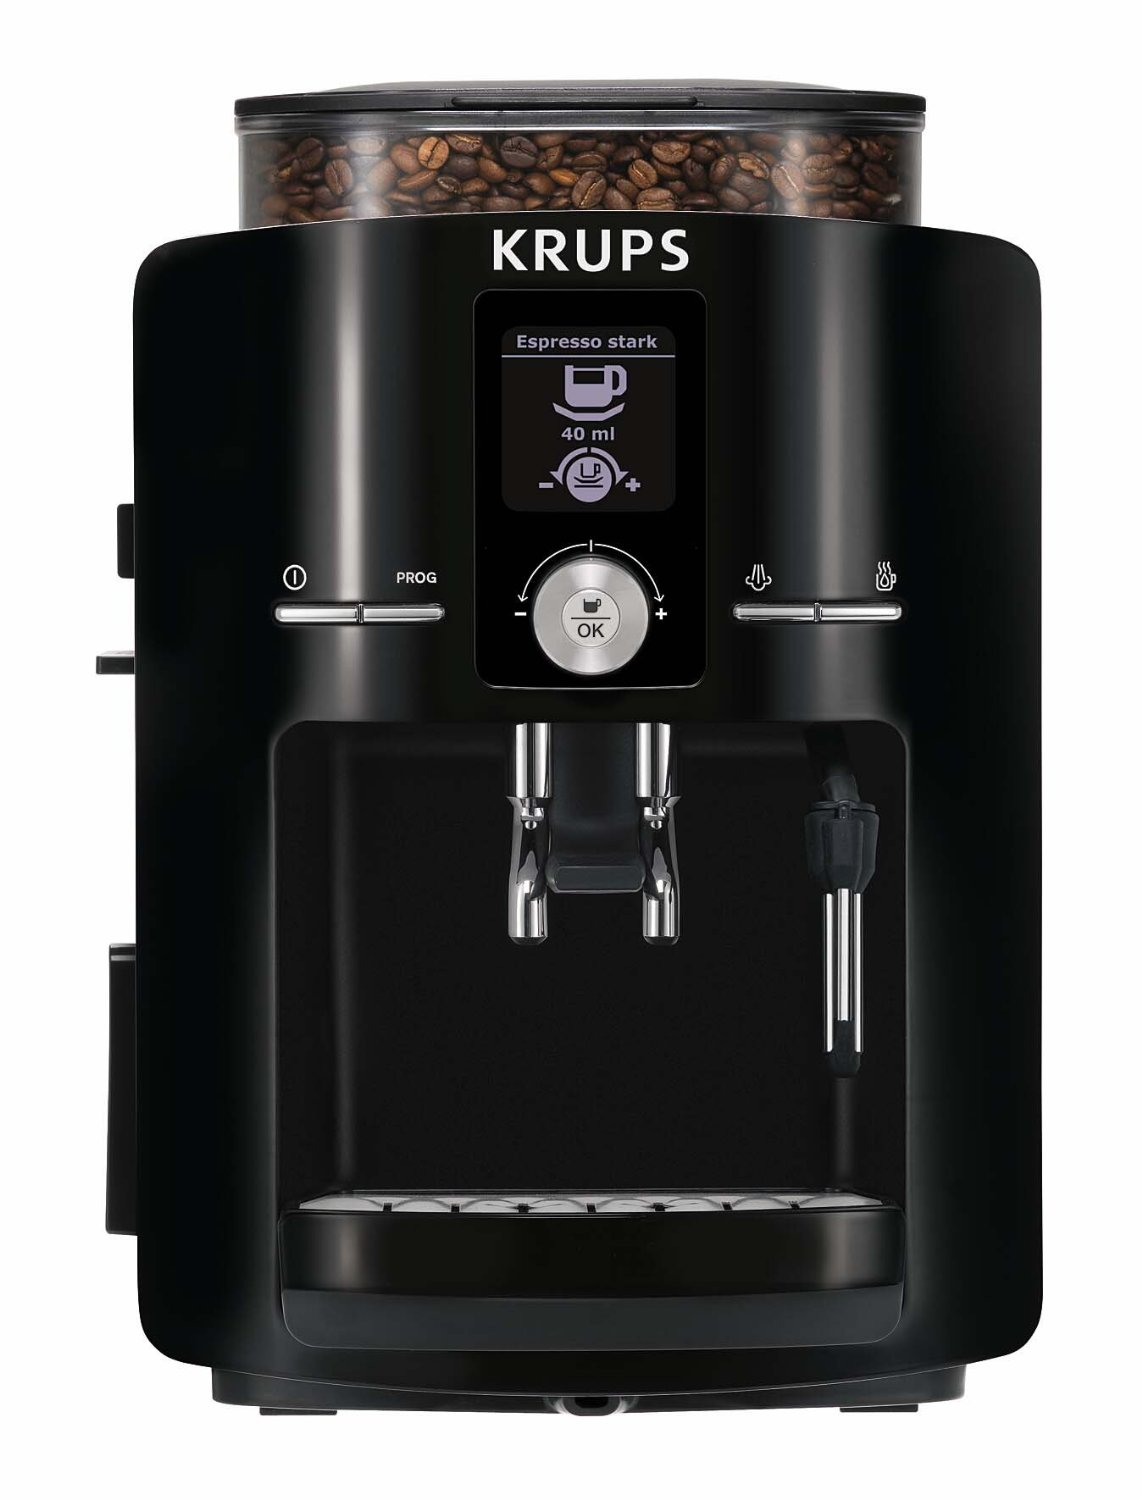 the krups espresso machine home espresso machine